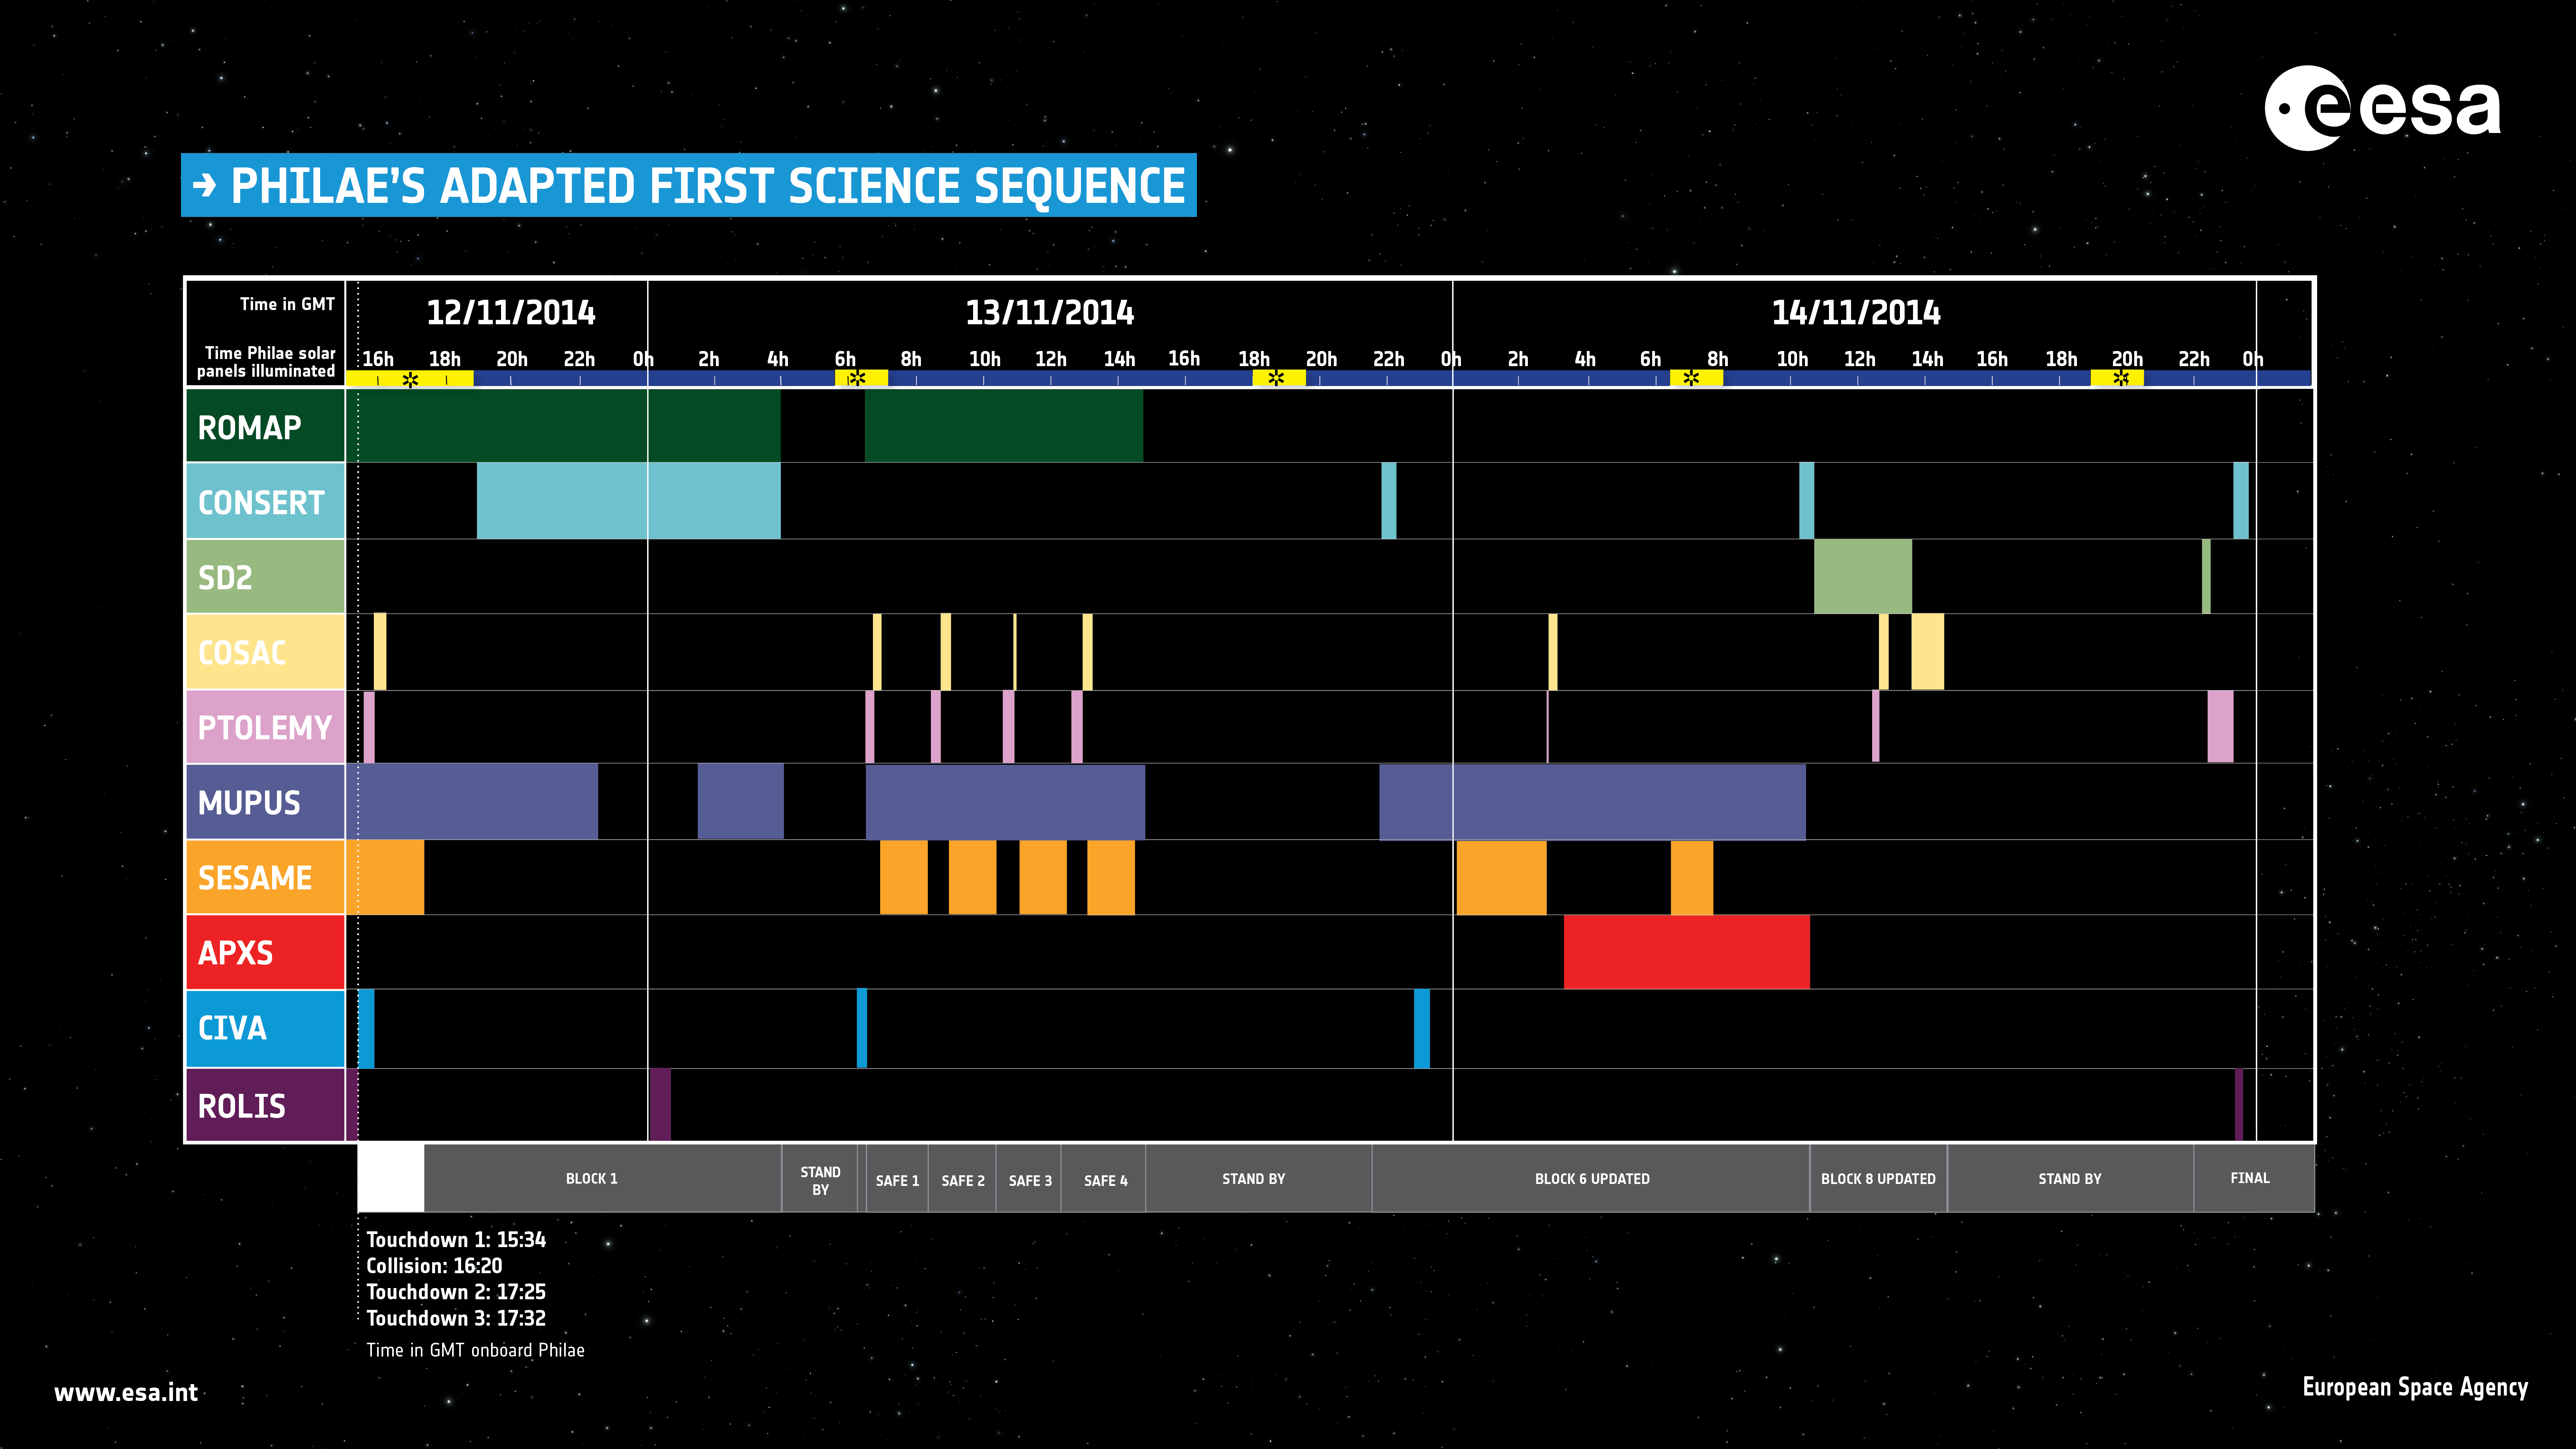 1567215953144-Rosetta_Philae_Adapted_first_science_sequence_2015-07-30_crop.jpg